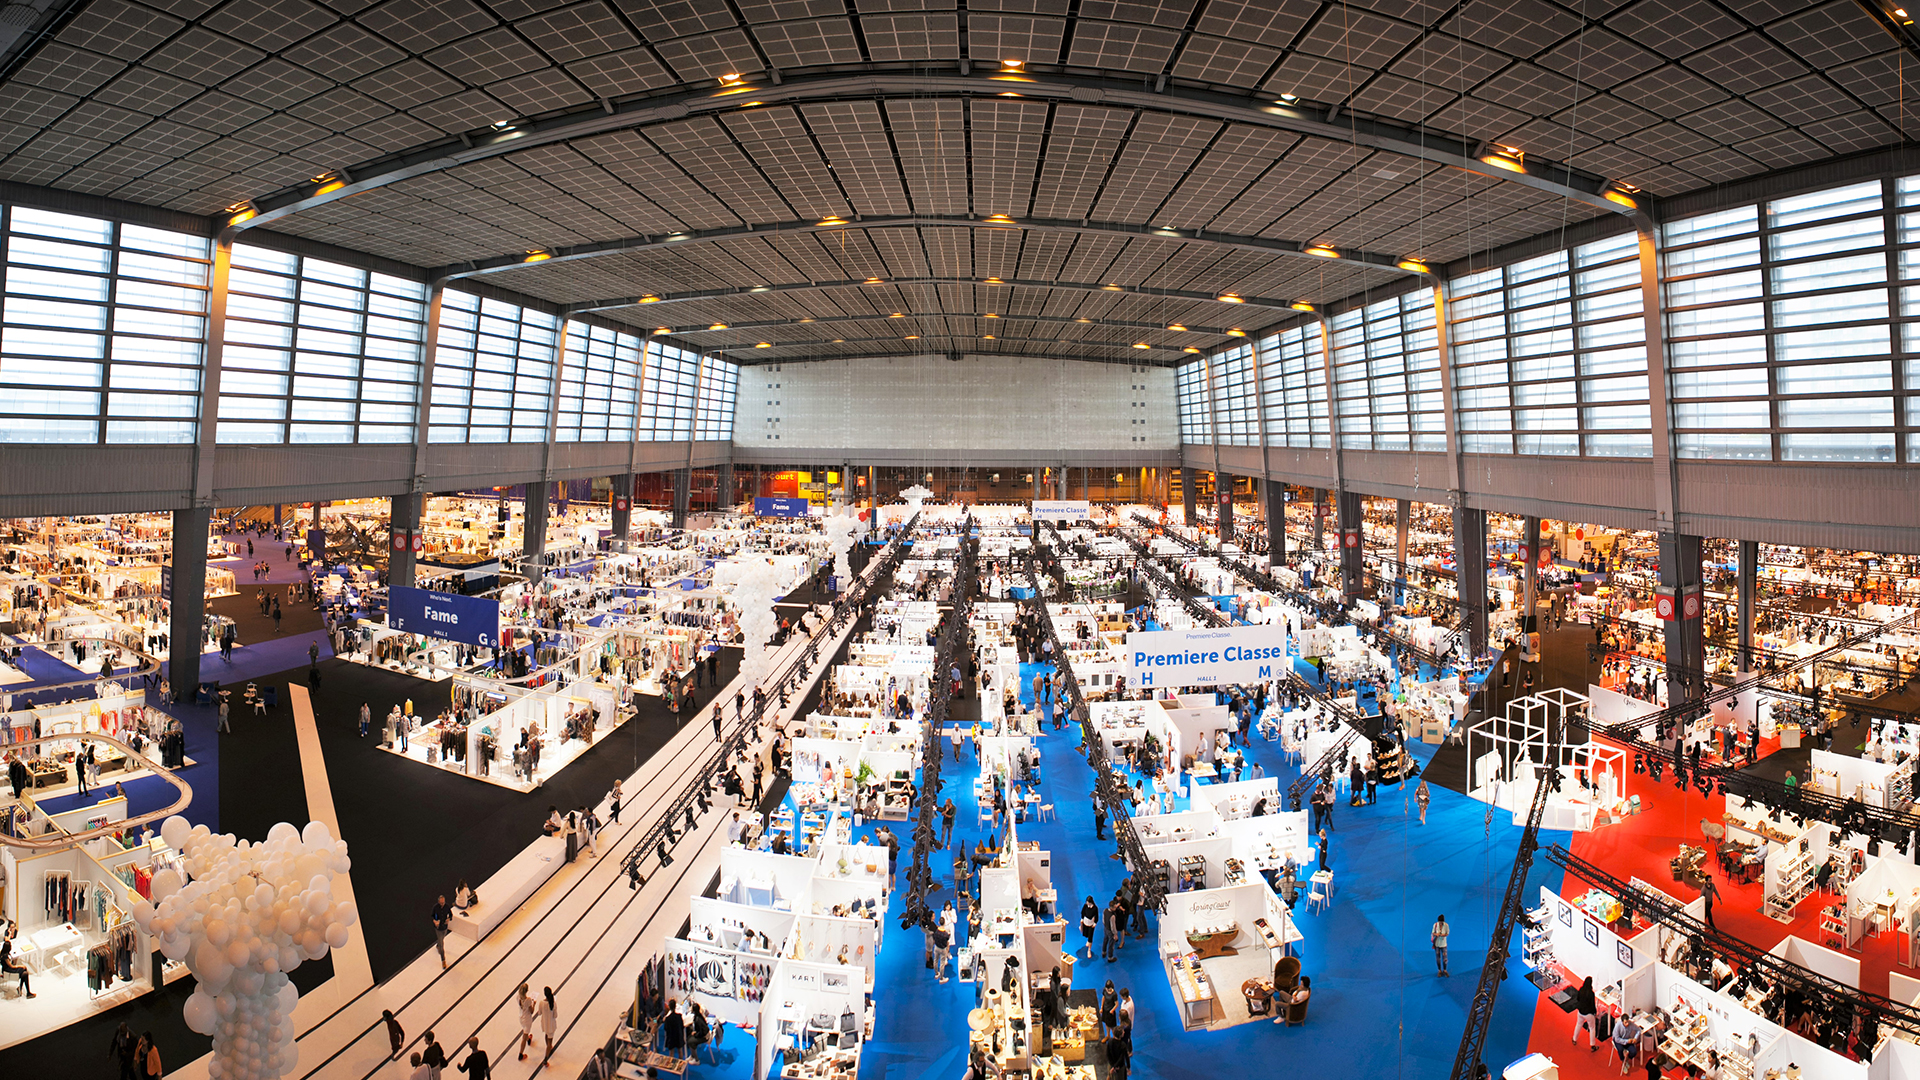 A great example of the overwhelming, over-standardized tradeshow. Photo from the  Who'sNext Tradeshow.